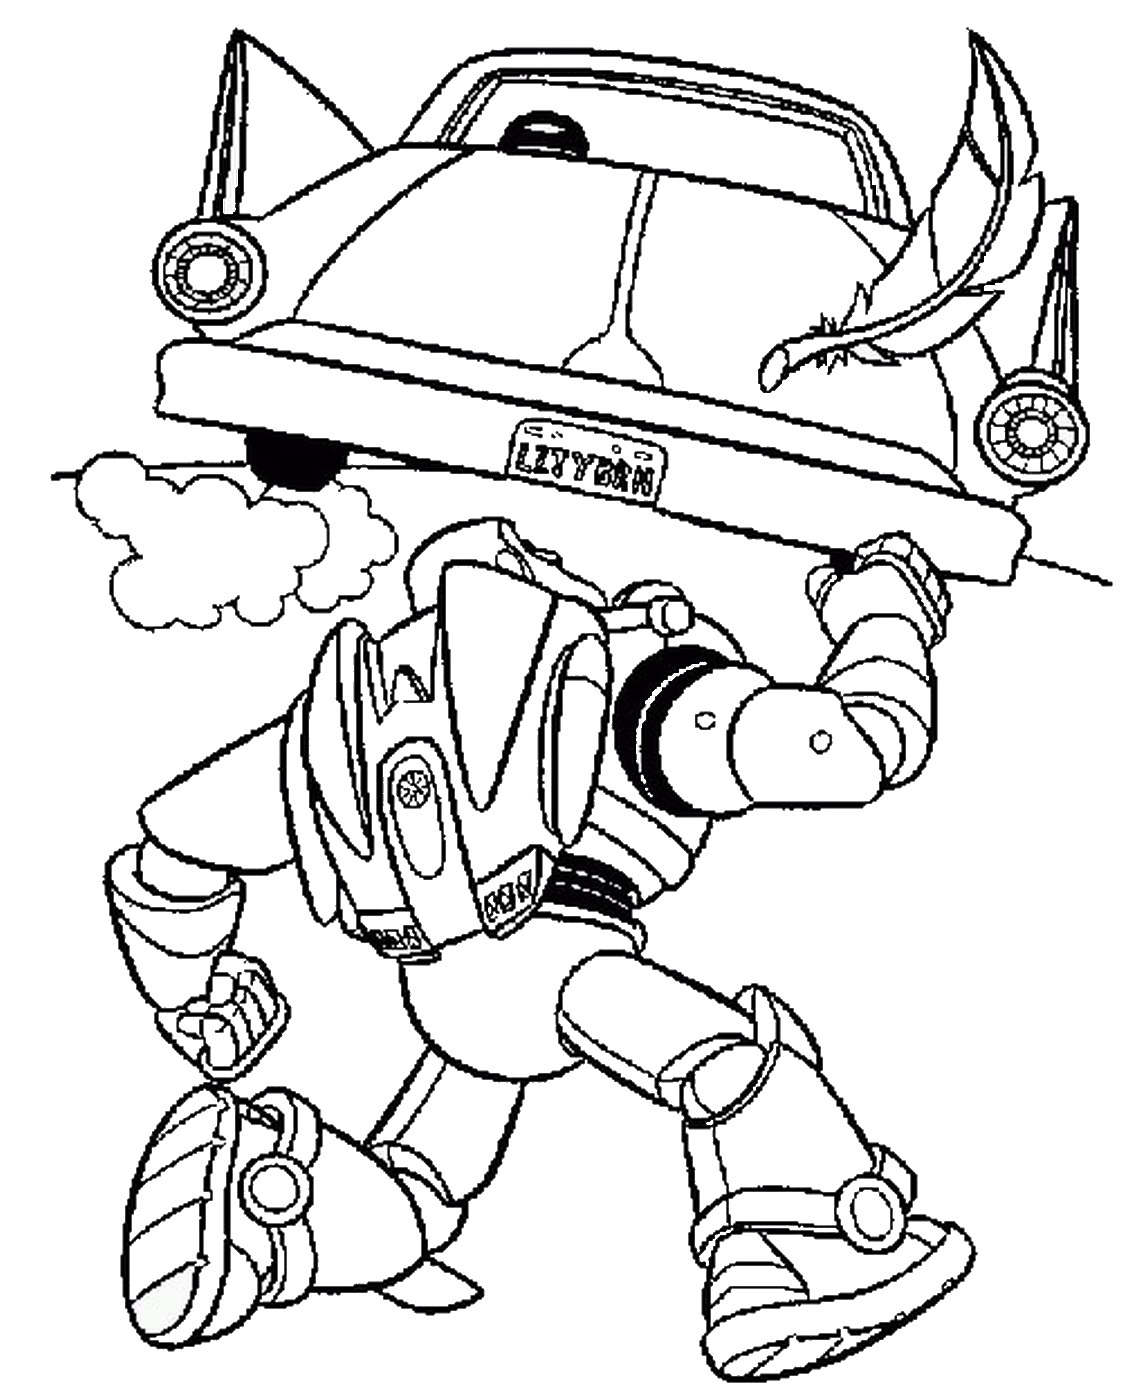 coloring pages of toy story coloring pages toy story free printable coloring pages of pages toy coloring story